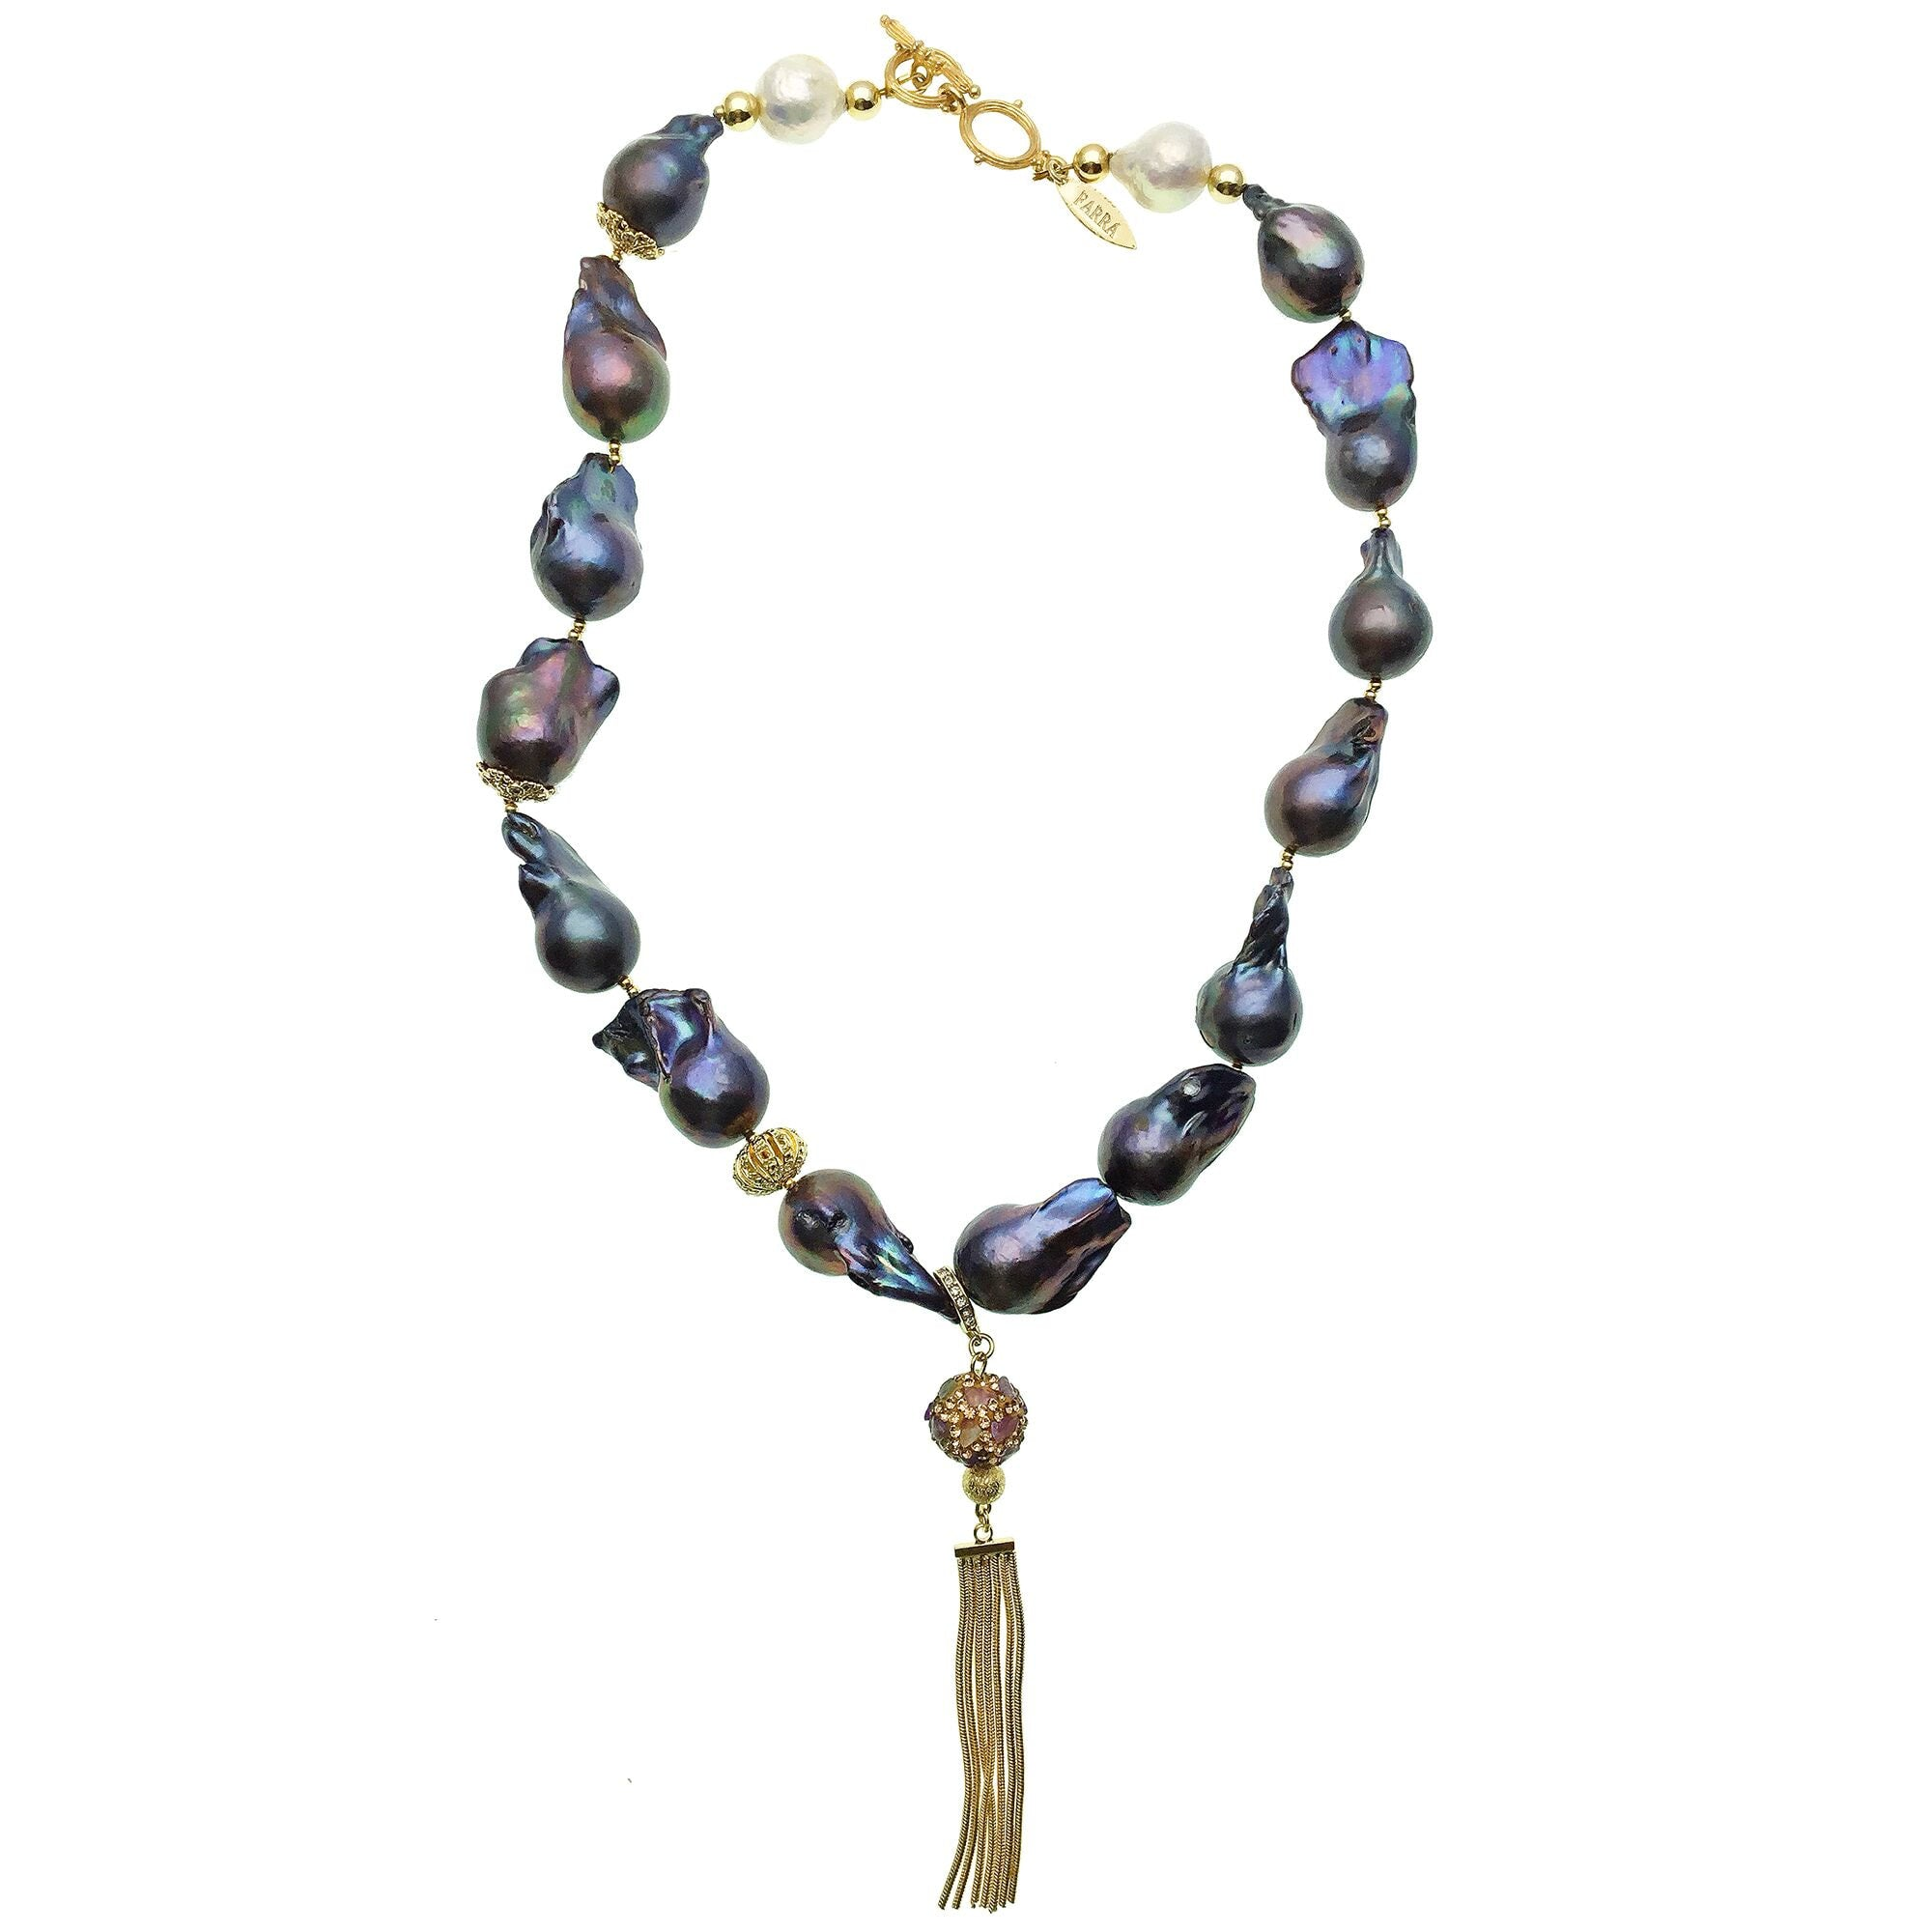 Purple Baroque Pearl with Gold Bead and Tassel Necklace - Shopidpearl